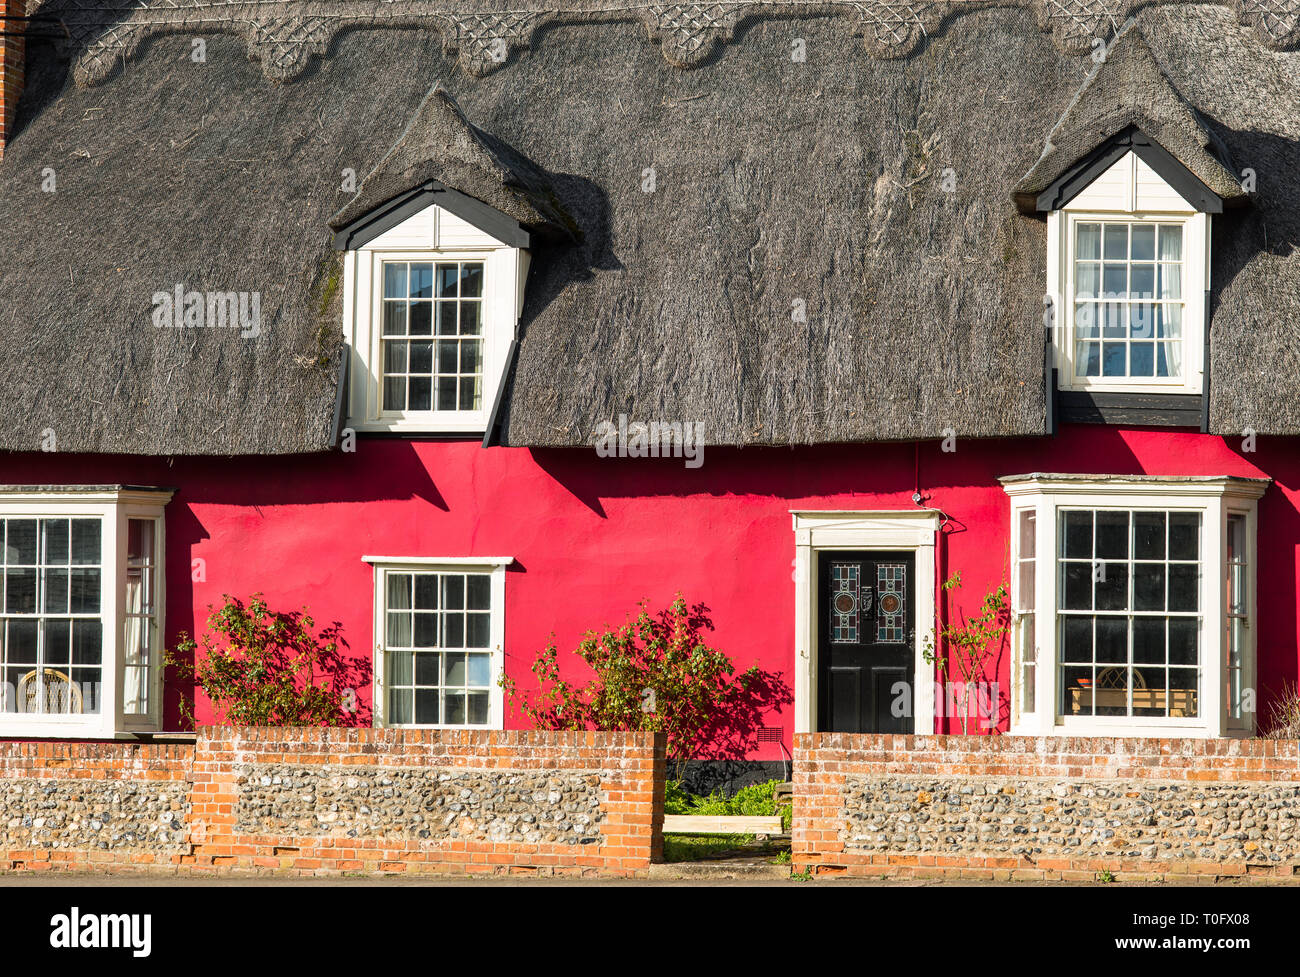 Pictureque red thatched cottage at Cavendish village in Suffolk, East Anglia, England, UK. - Stock Image